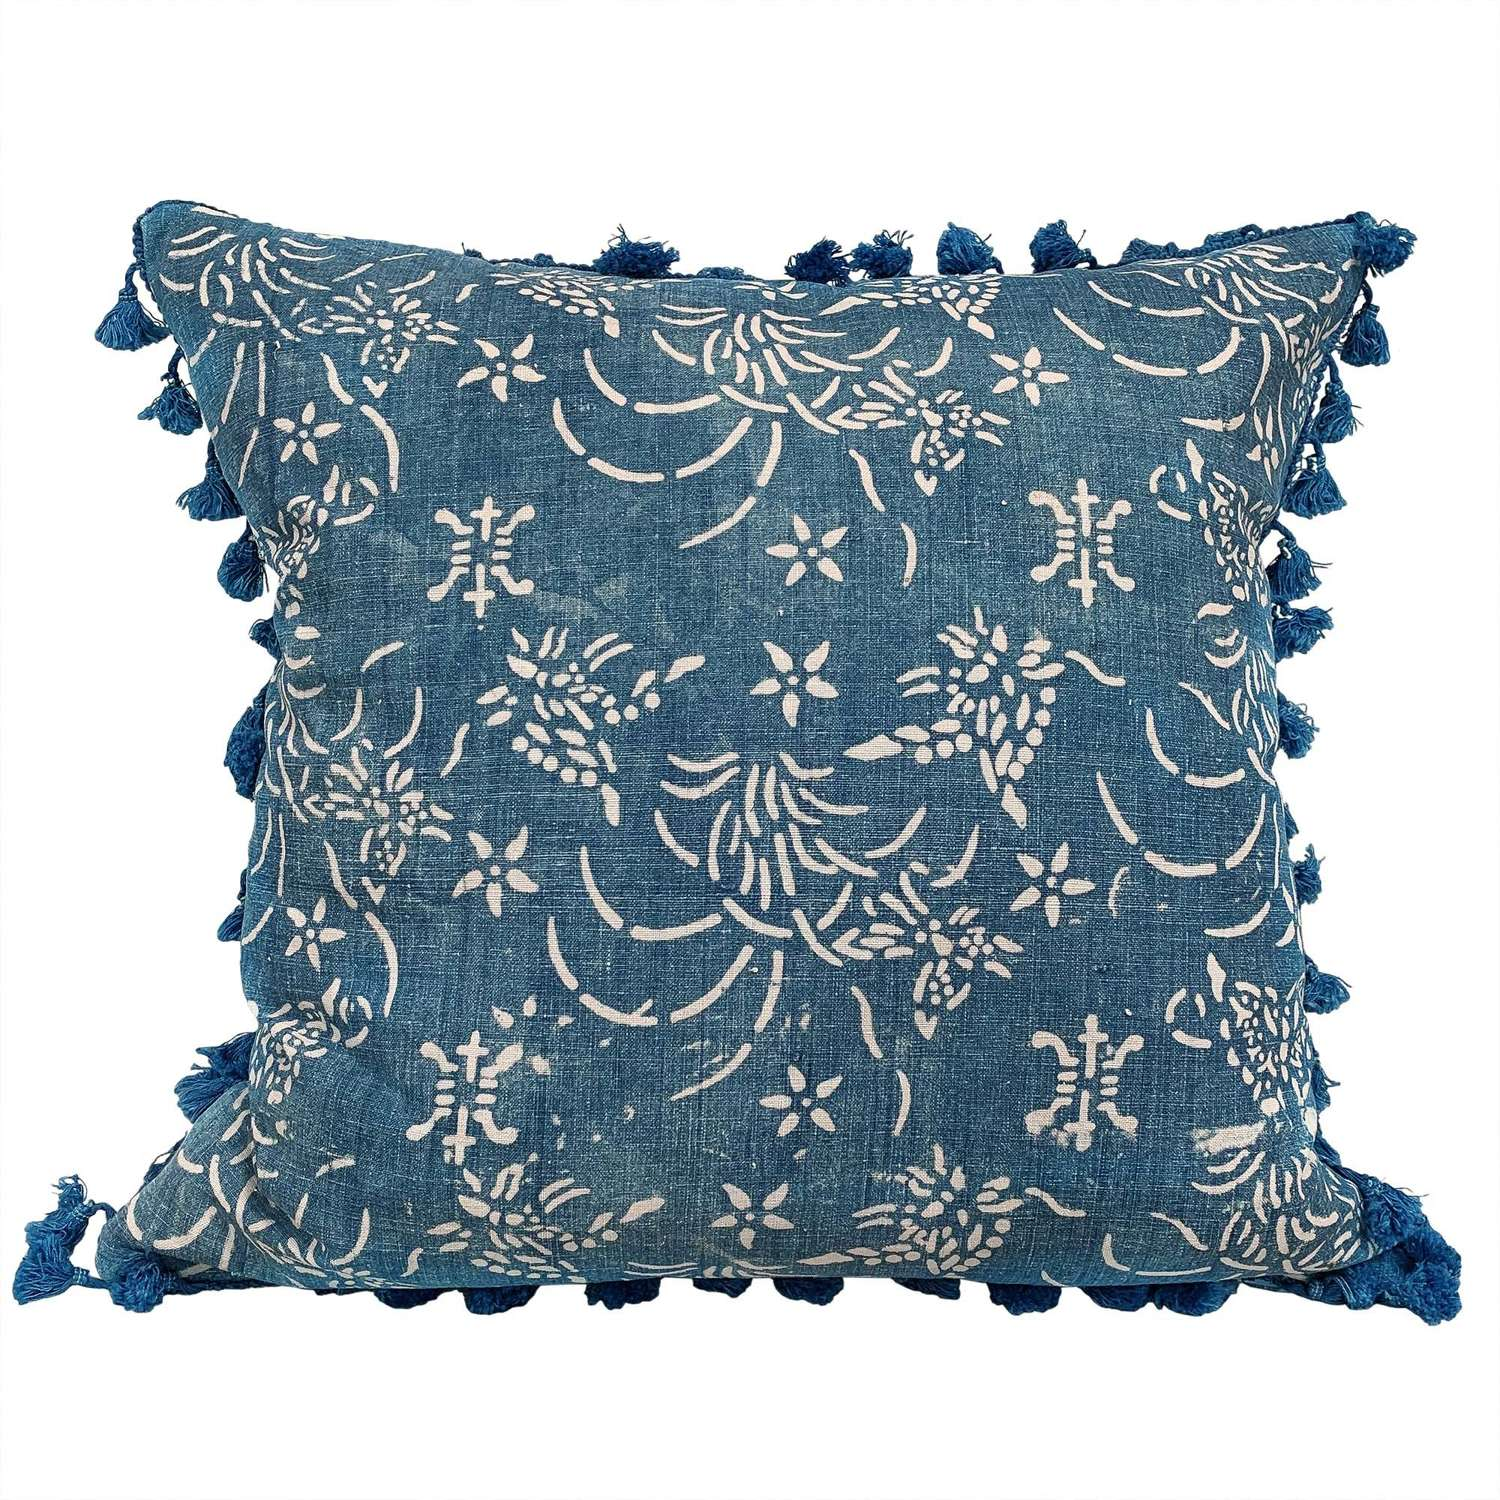 Indigo resist cushion with tassel fringe